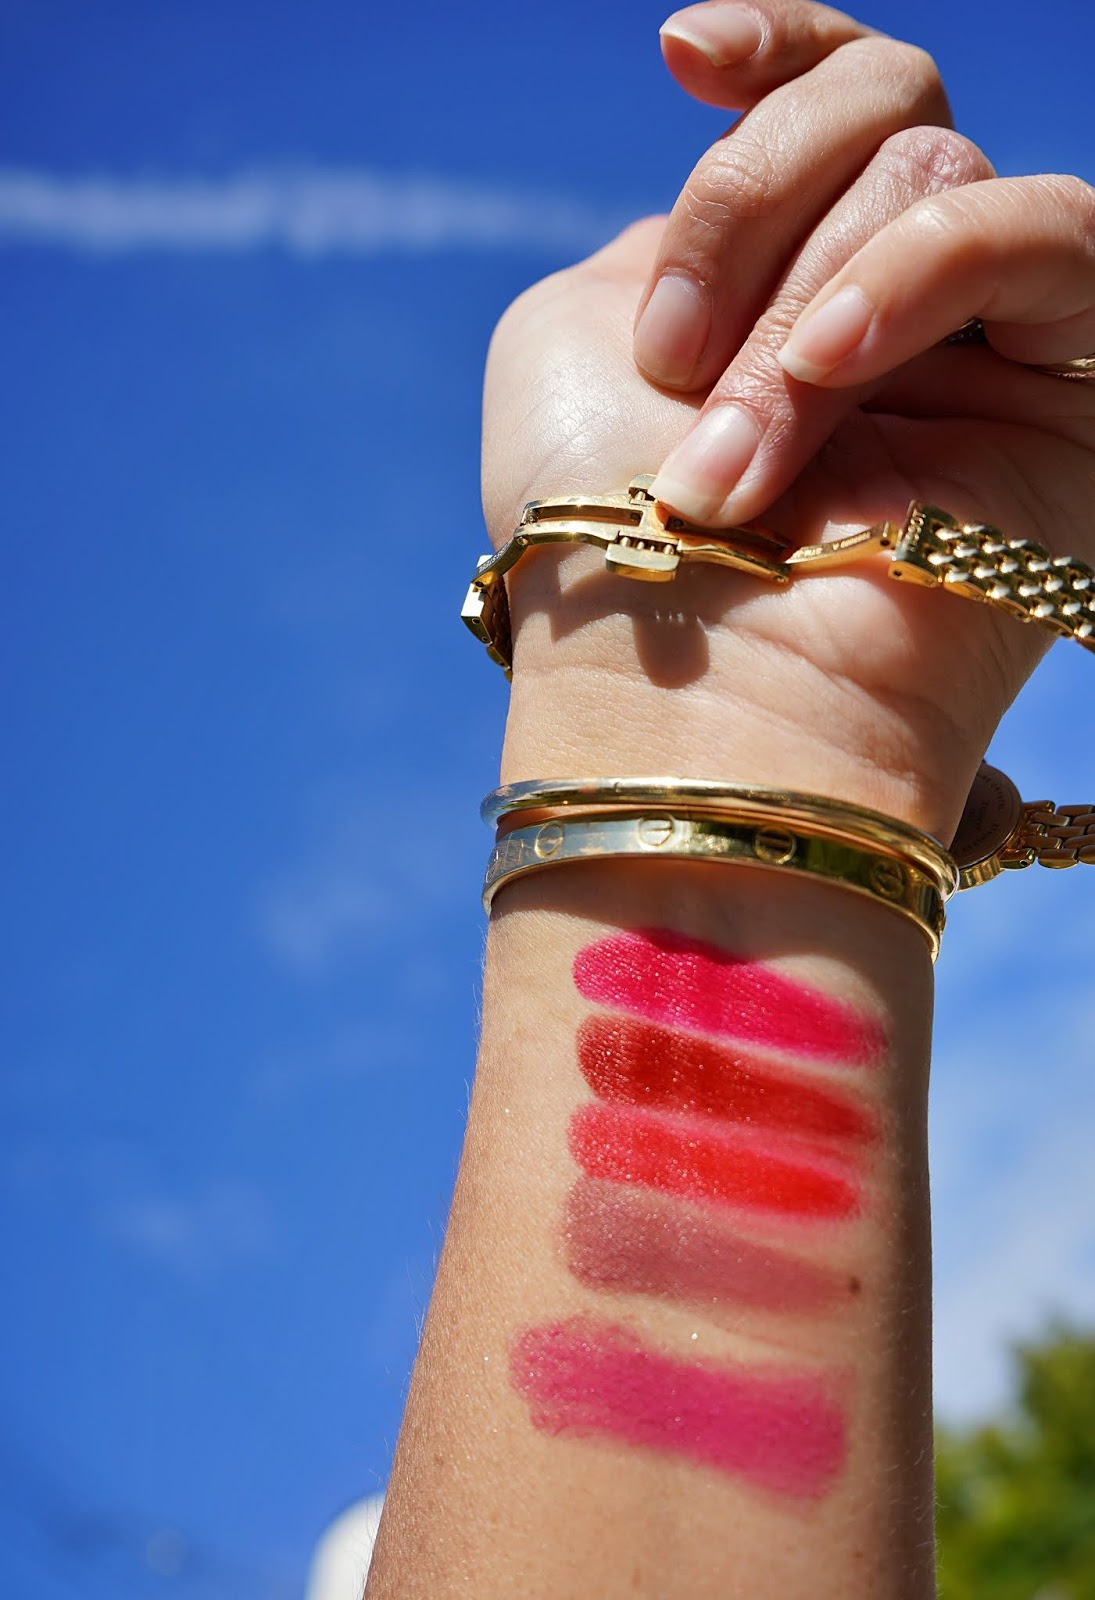 Hermes Satin Lipstick in Rose Zinzolin swatch